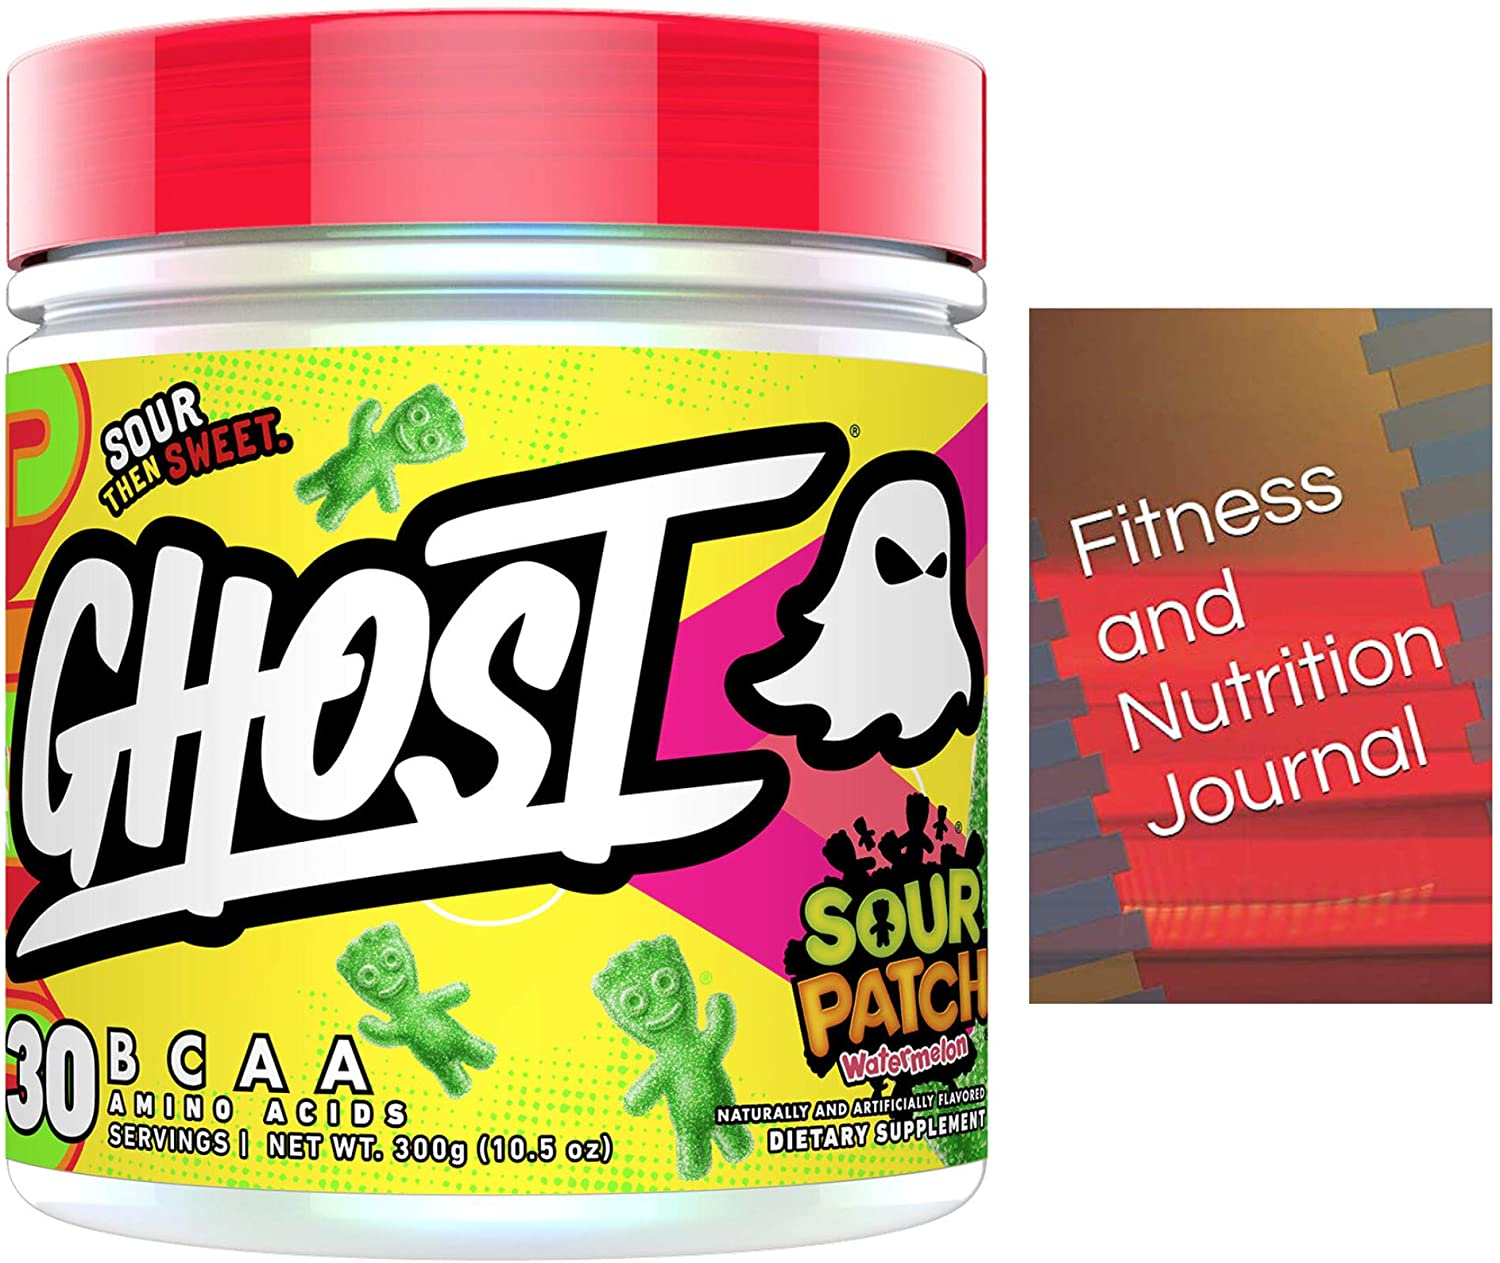 Ghost BCAA Amino Acids - Sour Patch Watermelon - Bundled with Fitness & Nutrition Journal